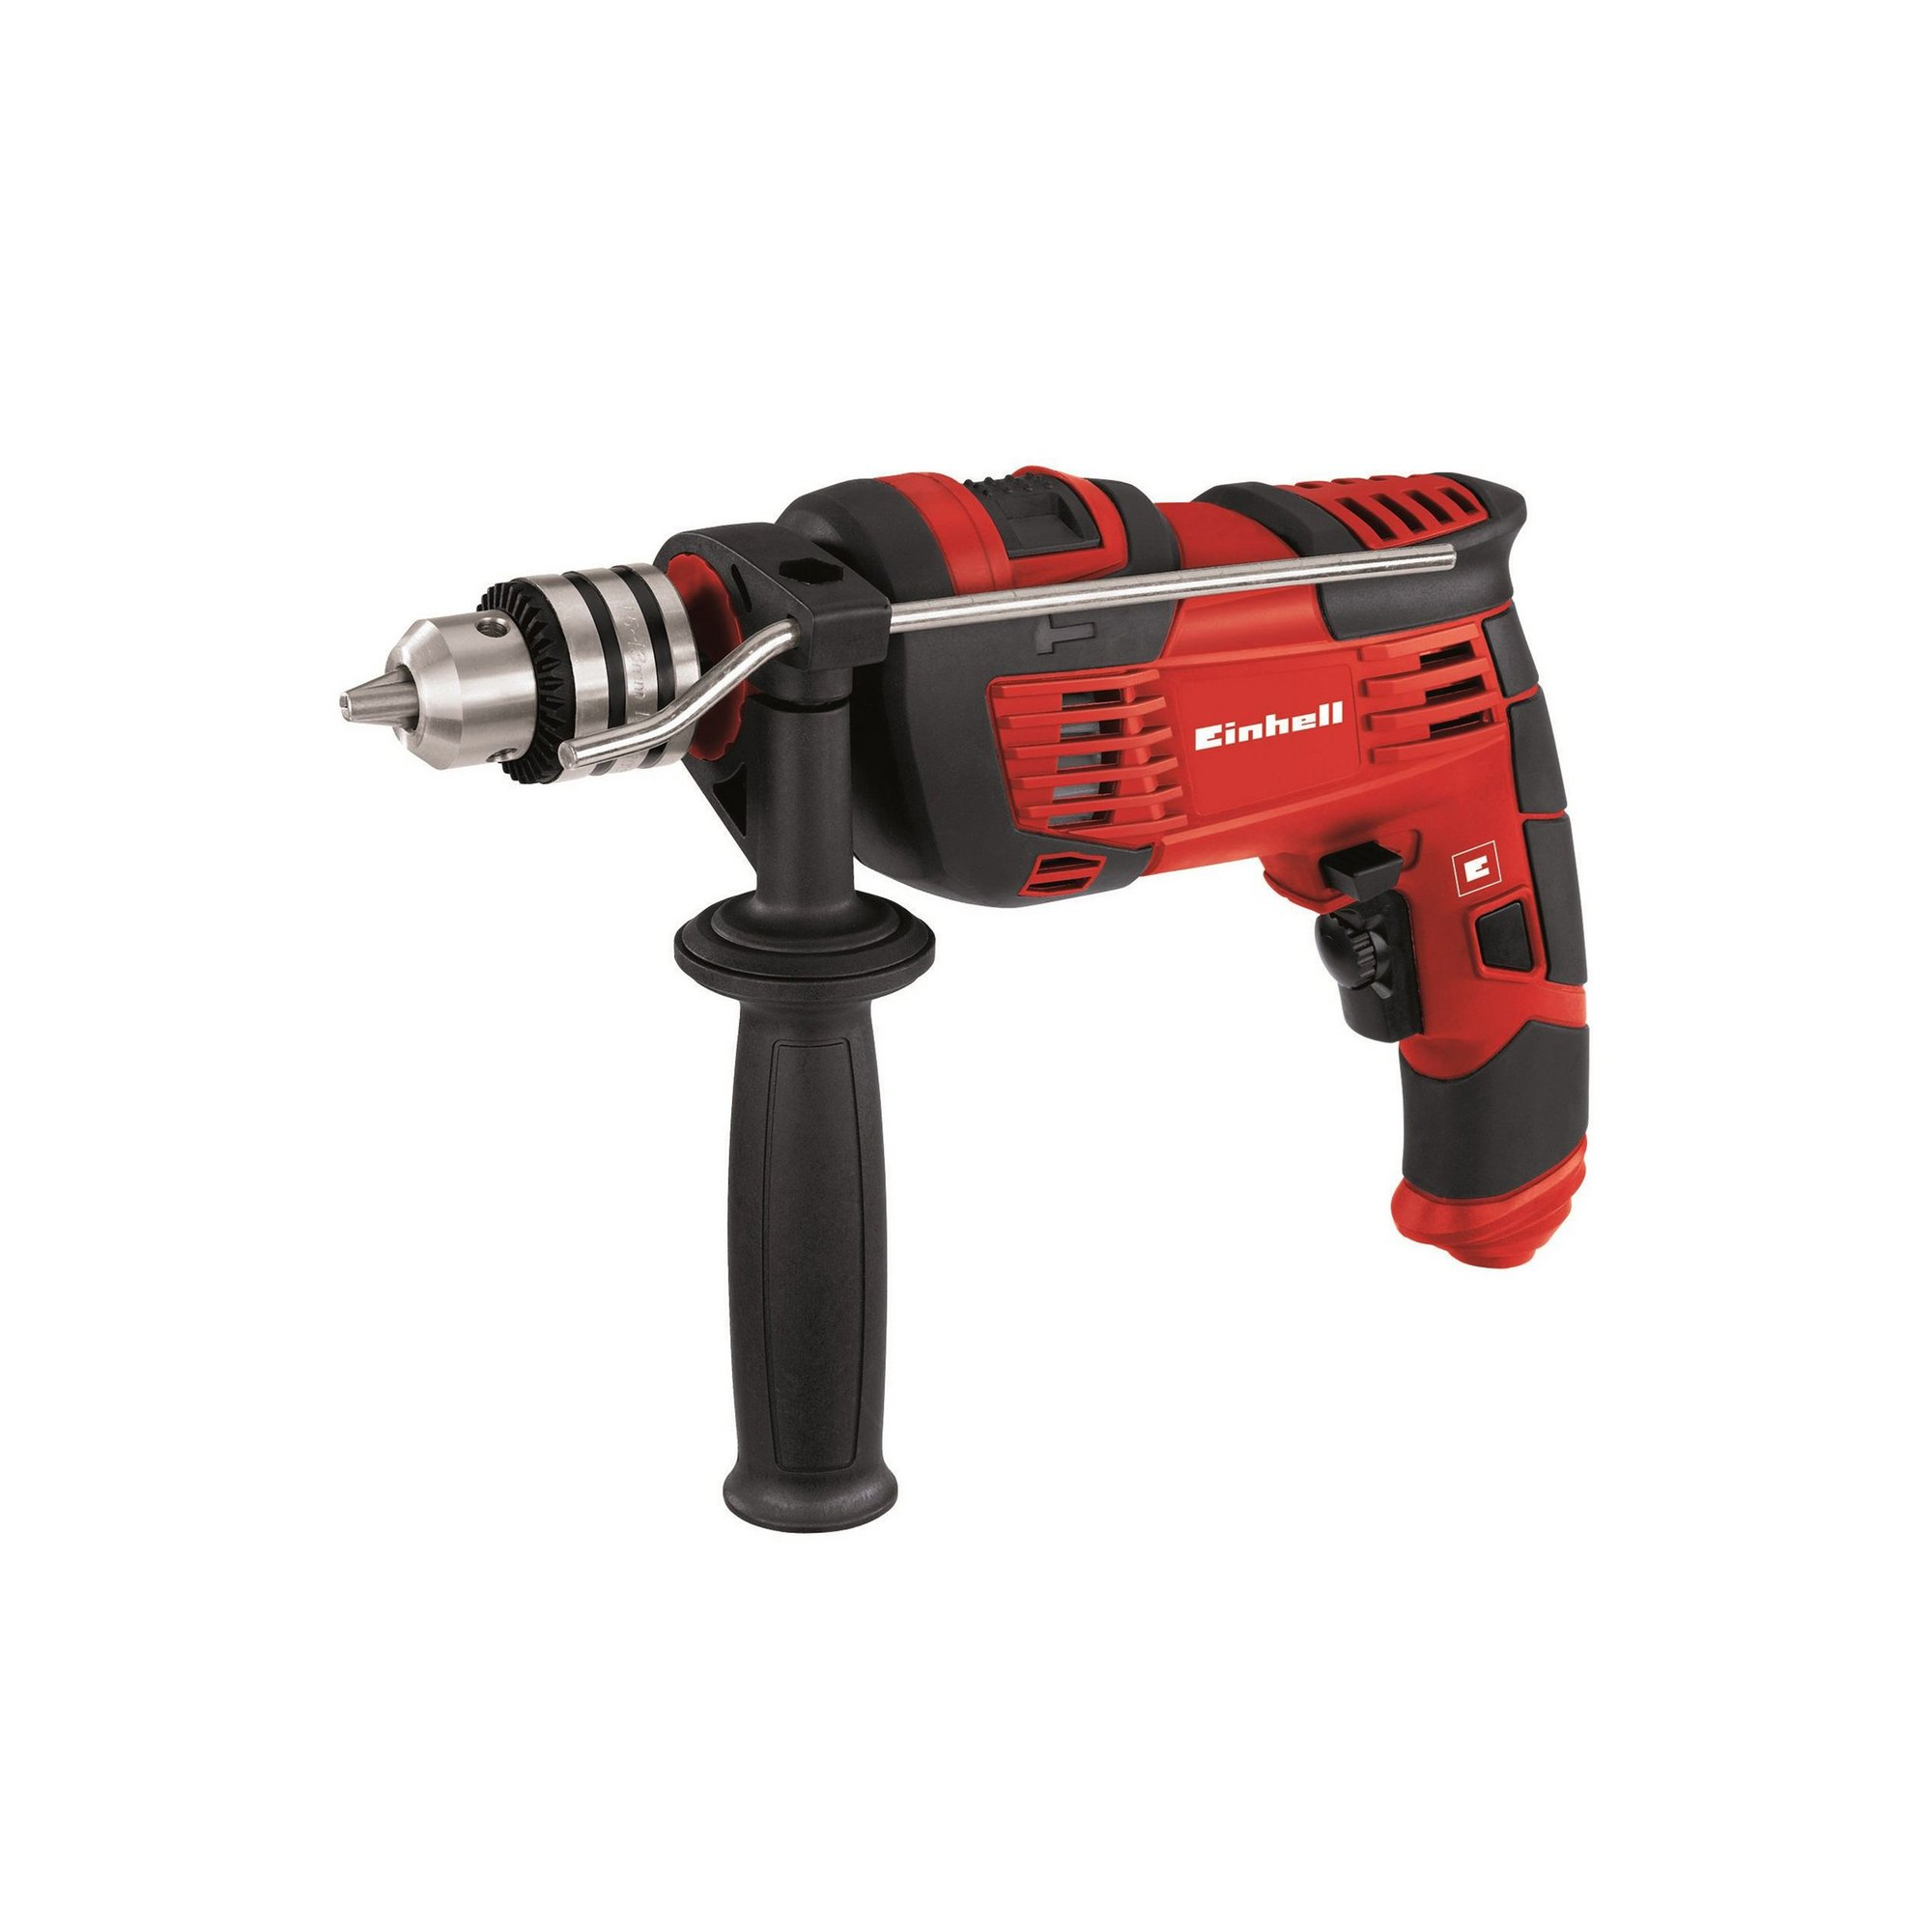 Image of Einhell 1010W Impact Drill